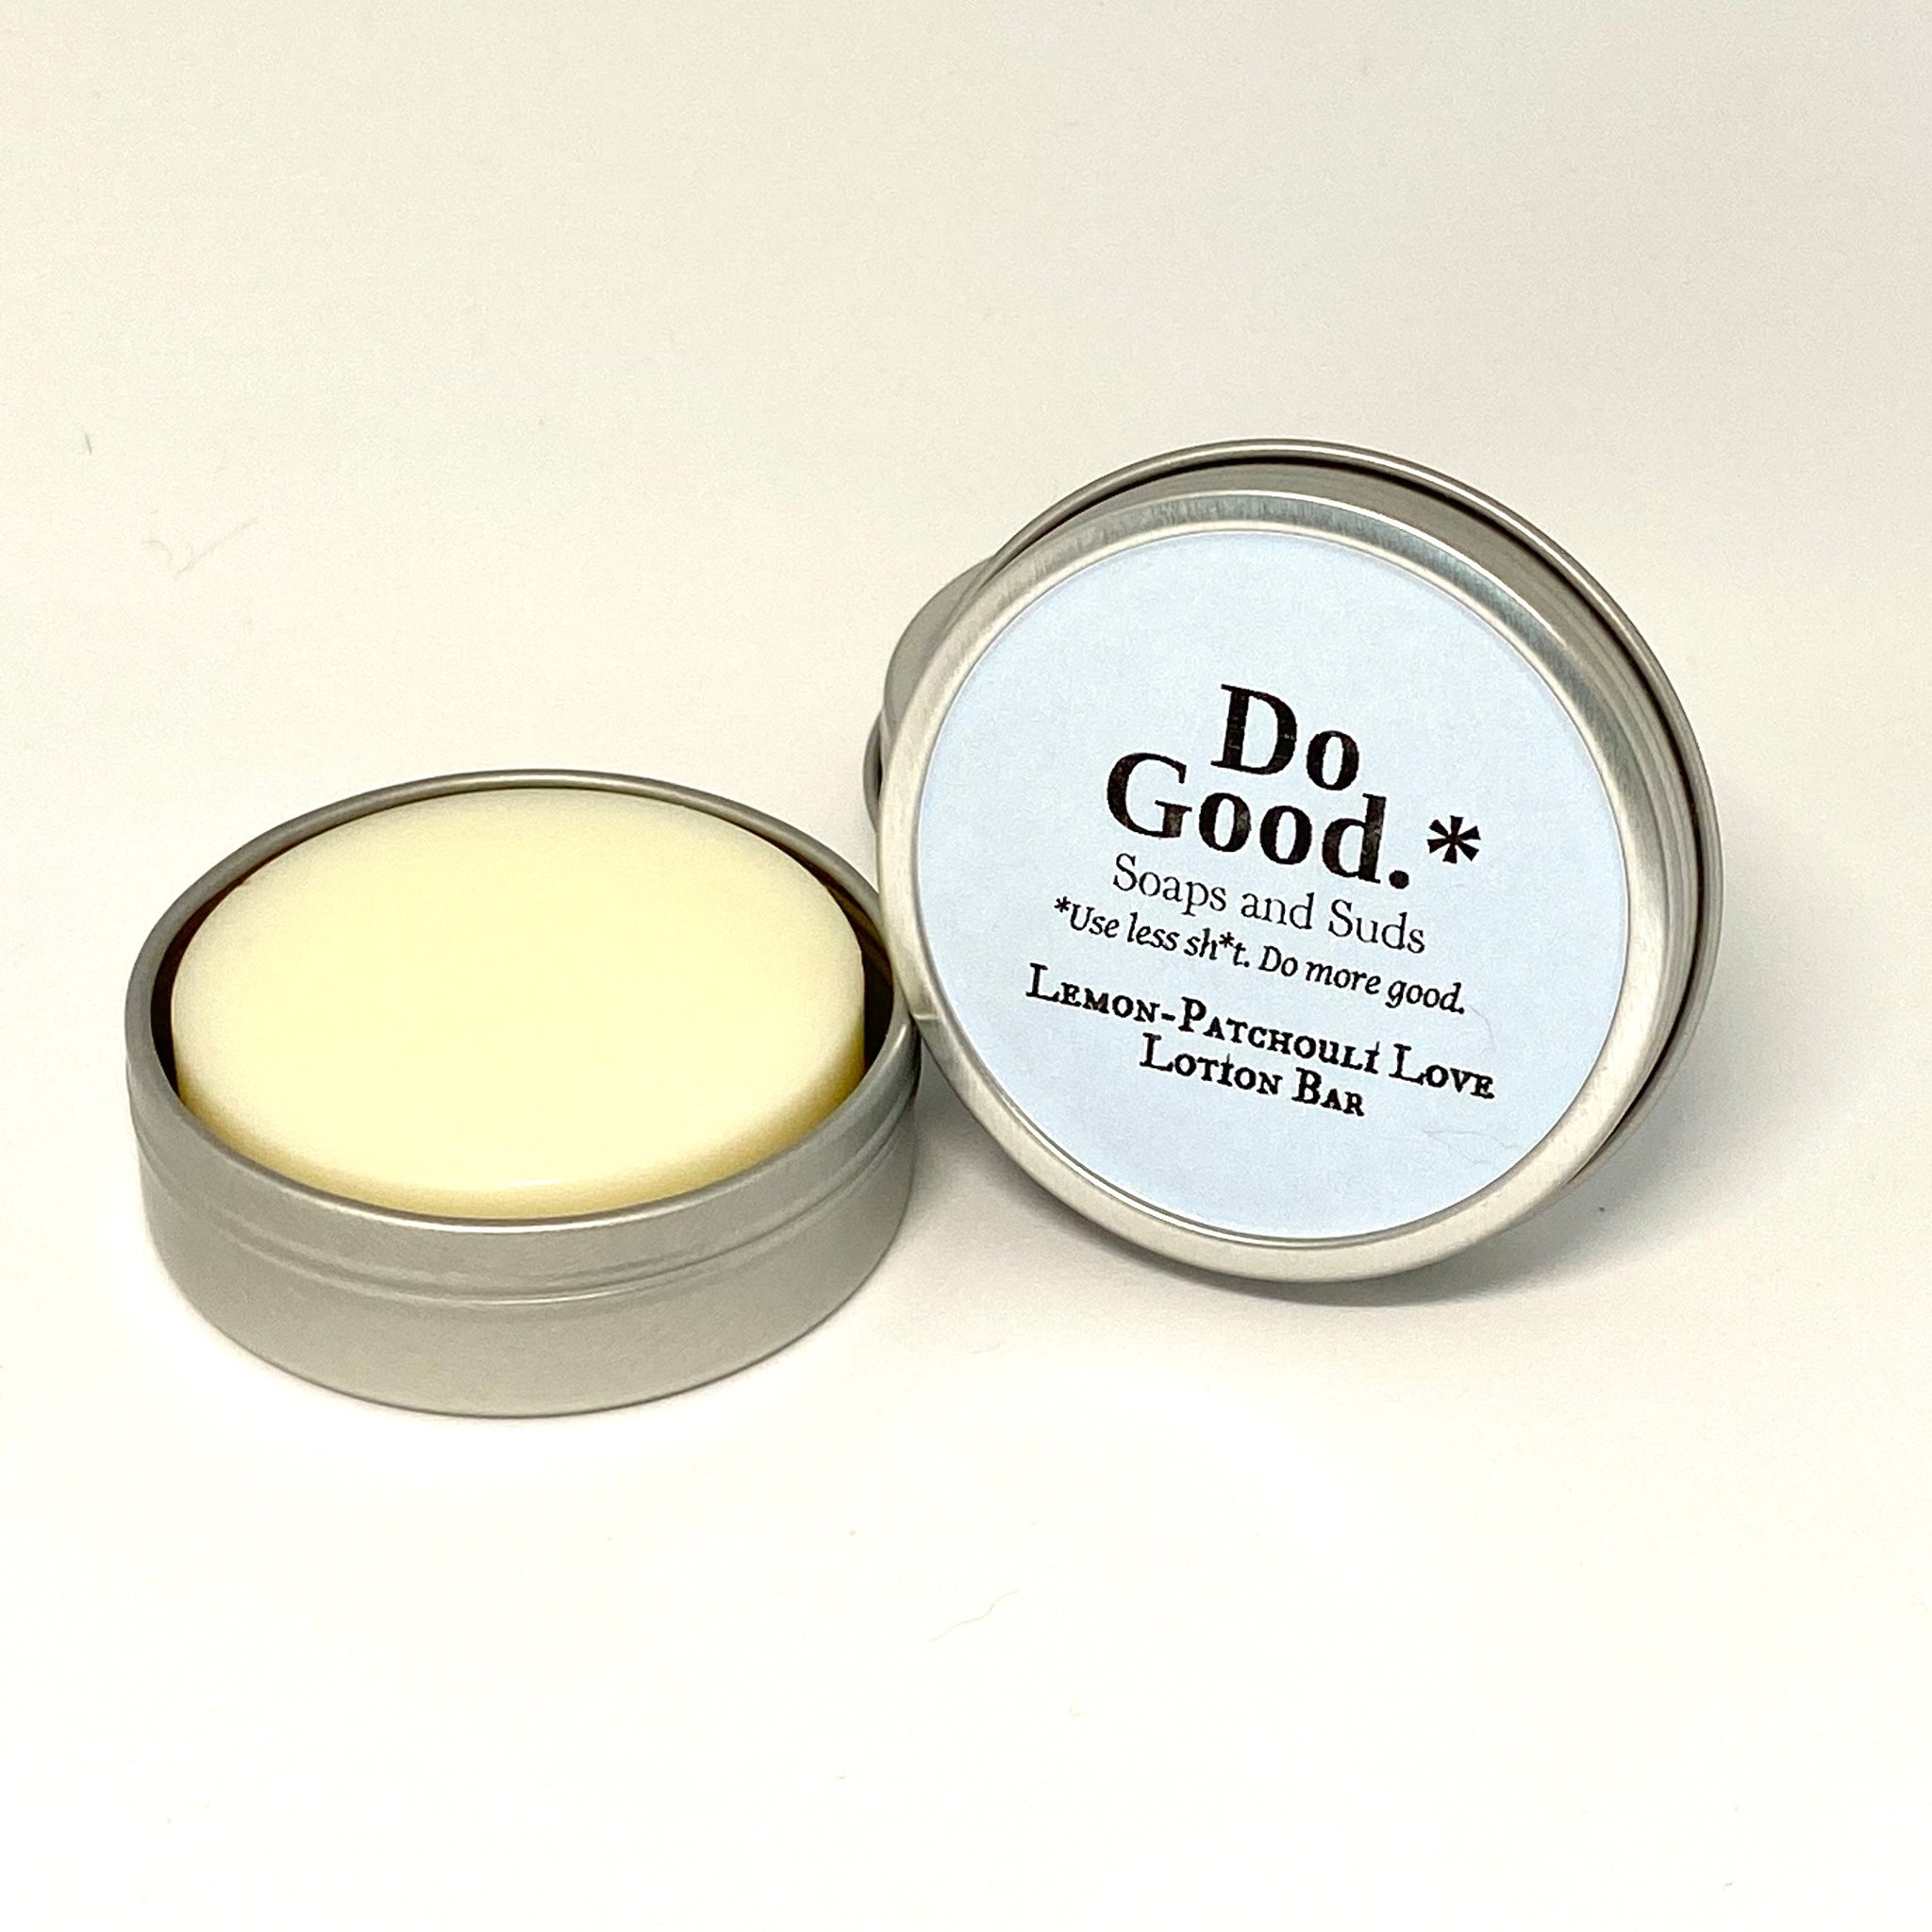 Lemon-Patchouli Love Lotion Bar